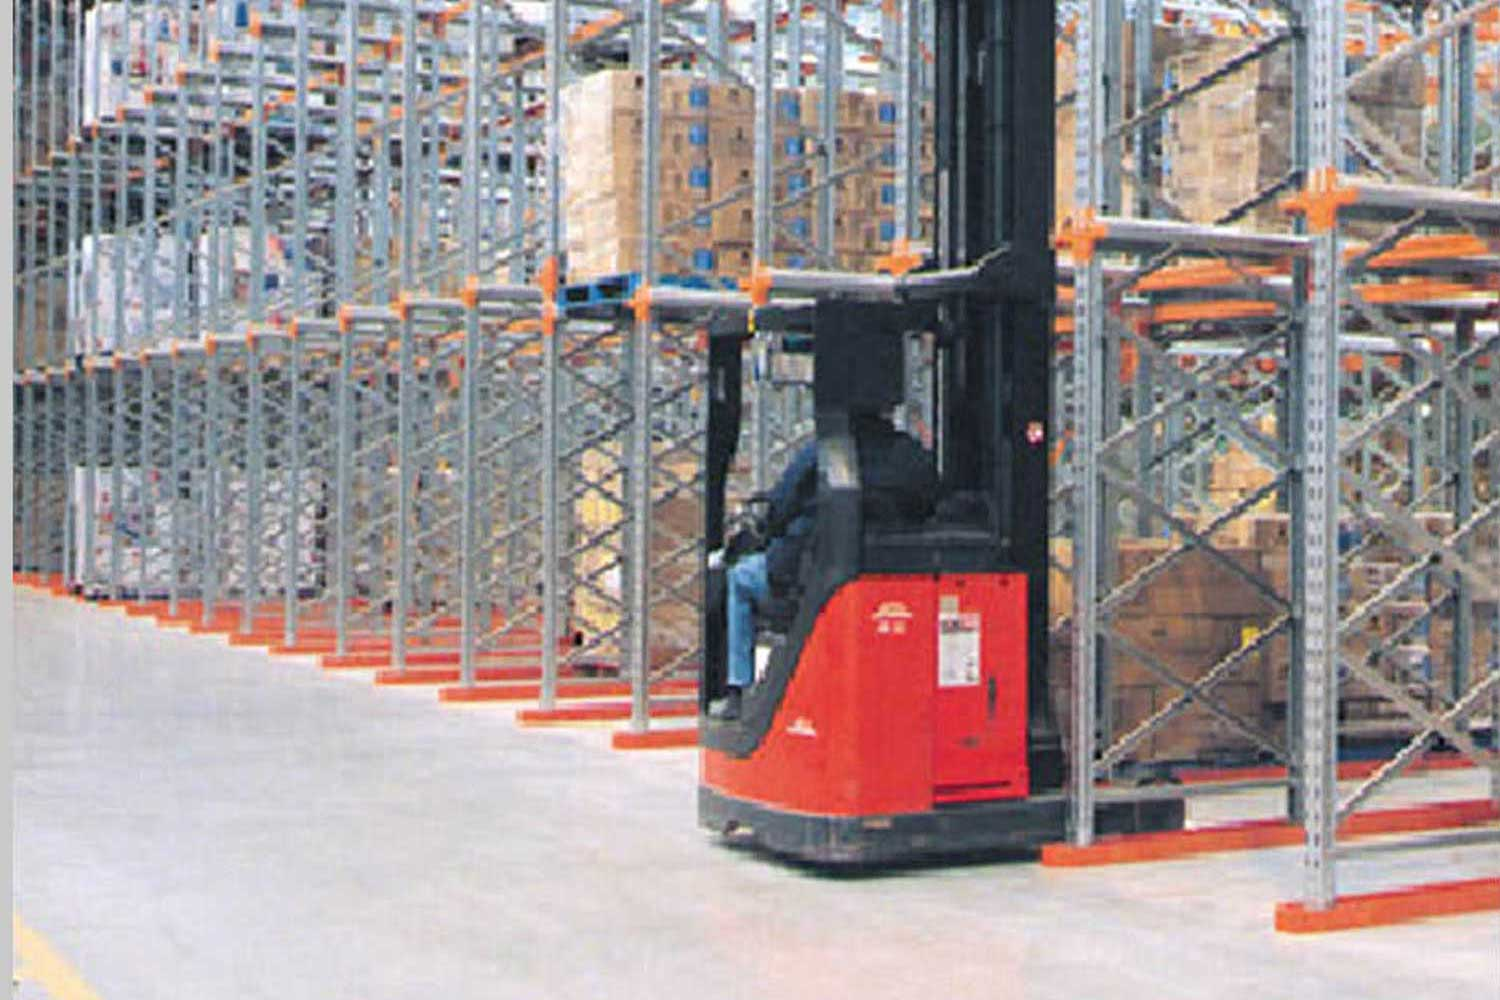 Forklift with Drive-in racking in Warehouse